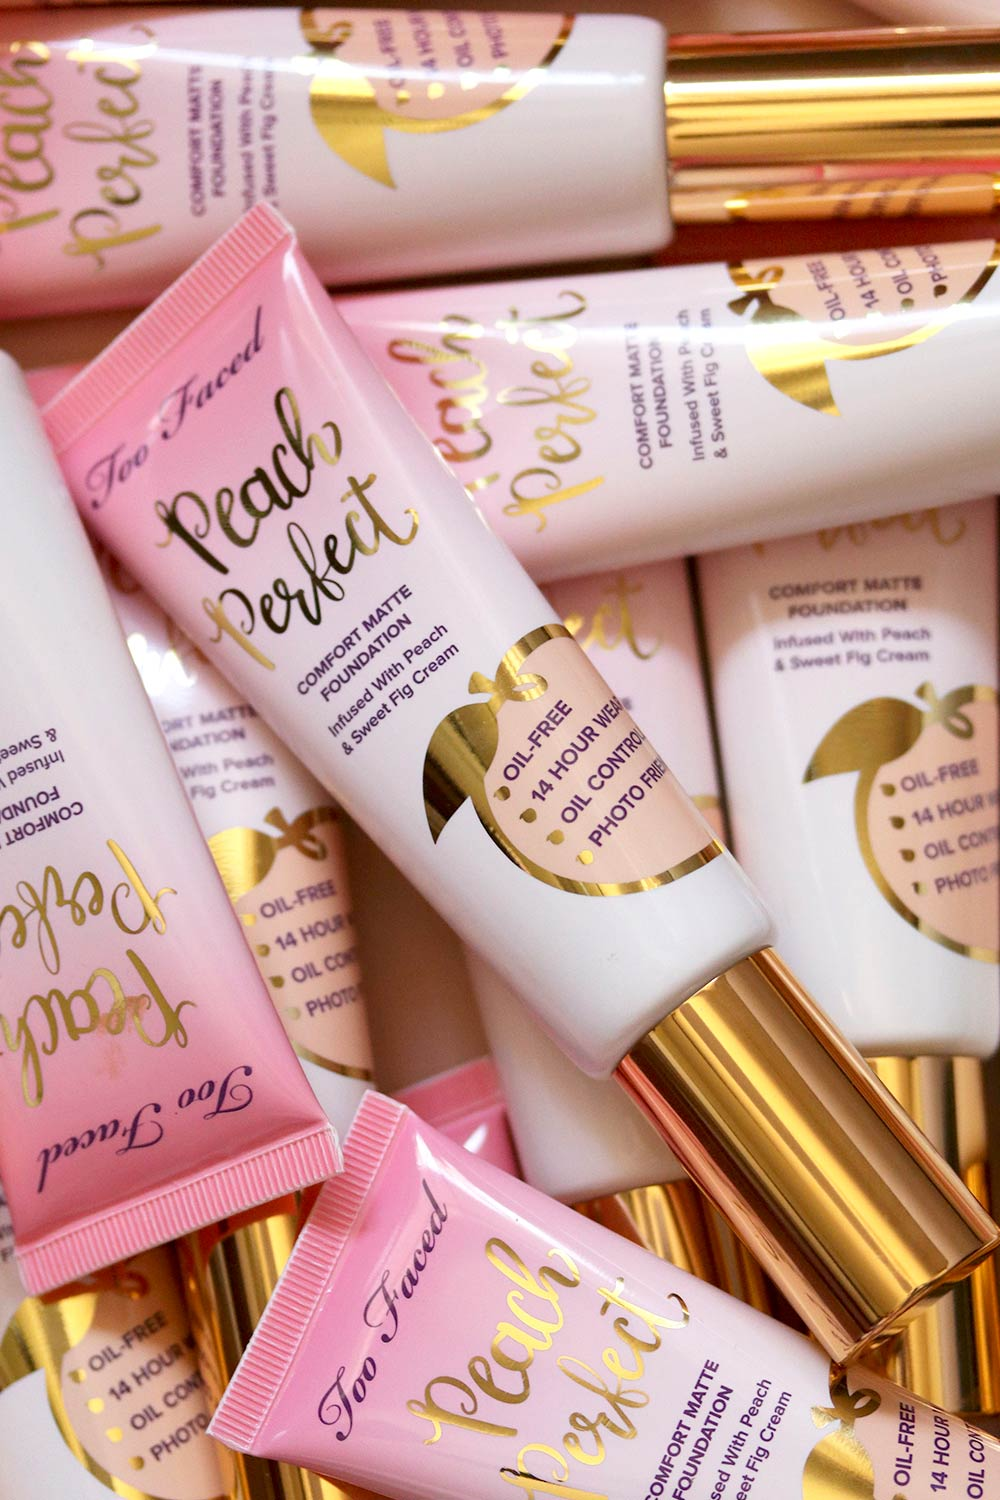 too faced peach perfect foundation review